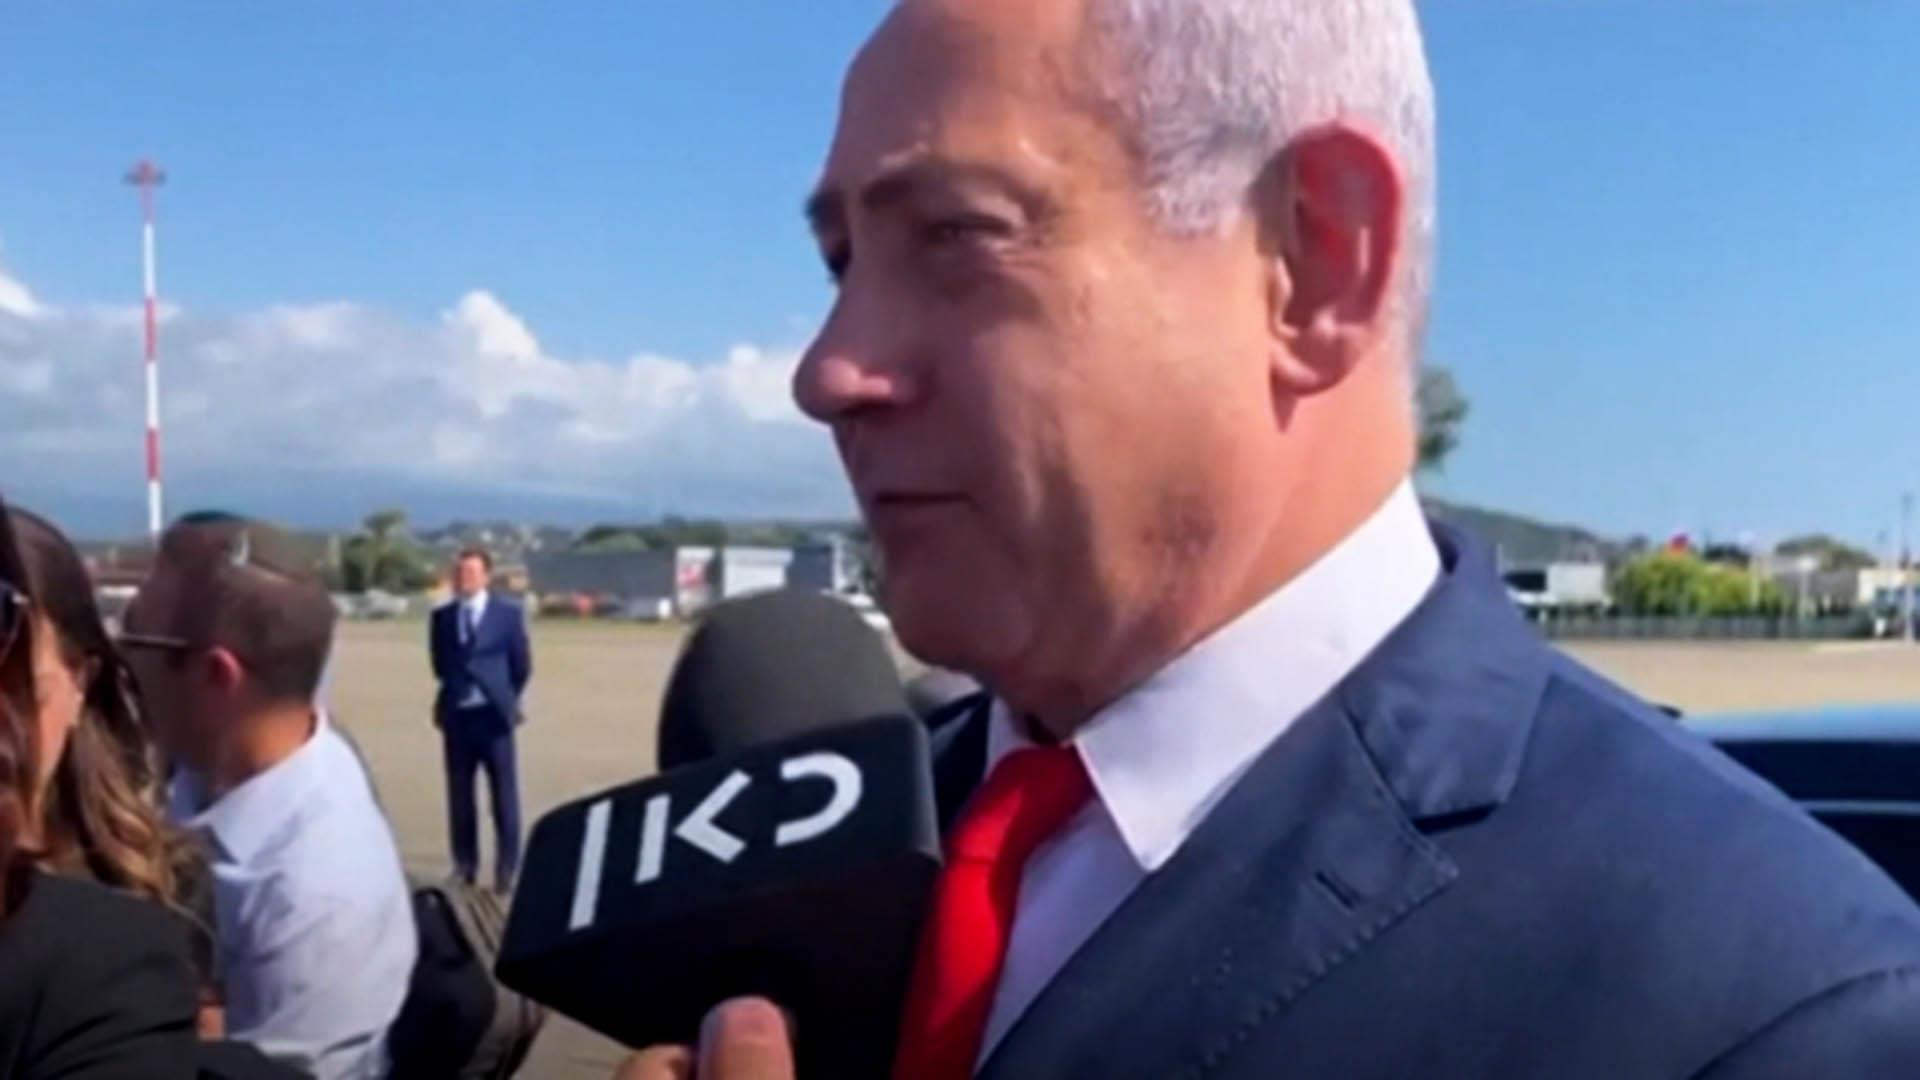 Netanyahu denies U.S. spying allegations